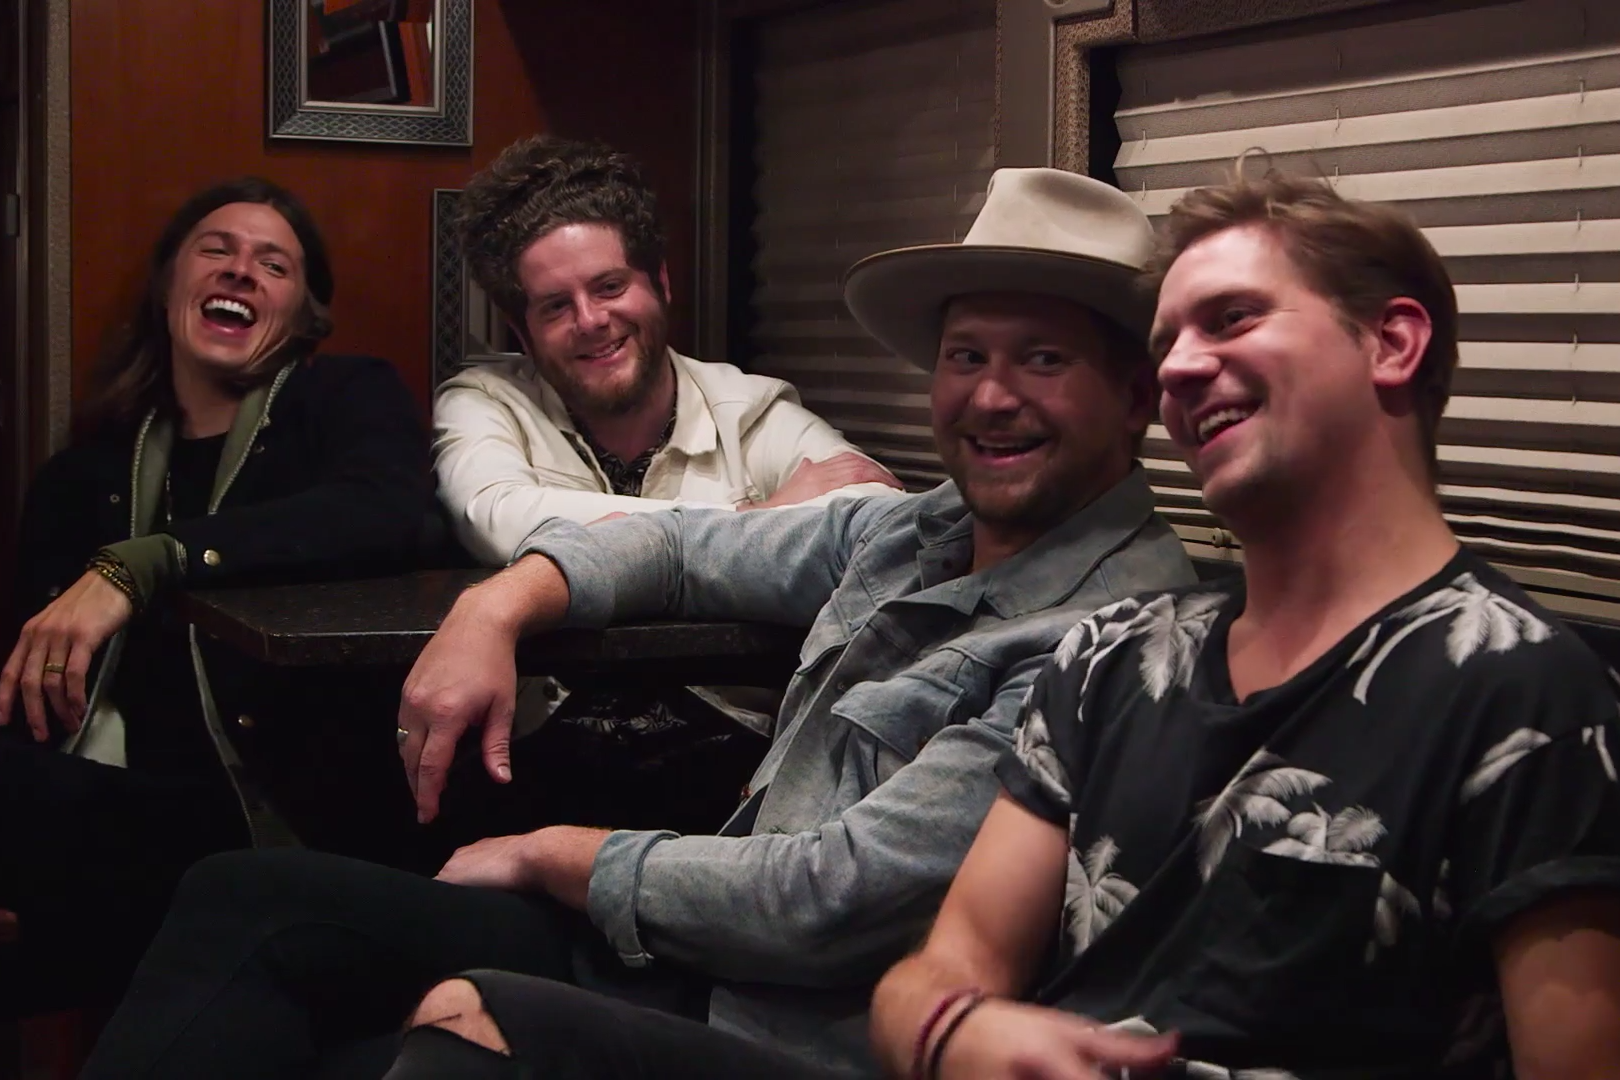 WATCH: Members Of <em>NEEDTOBREATHE</em> Reflect On The Band's Rich Southern Roots